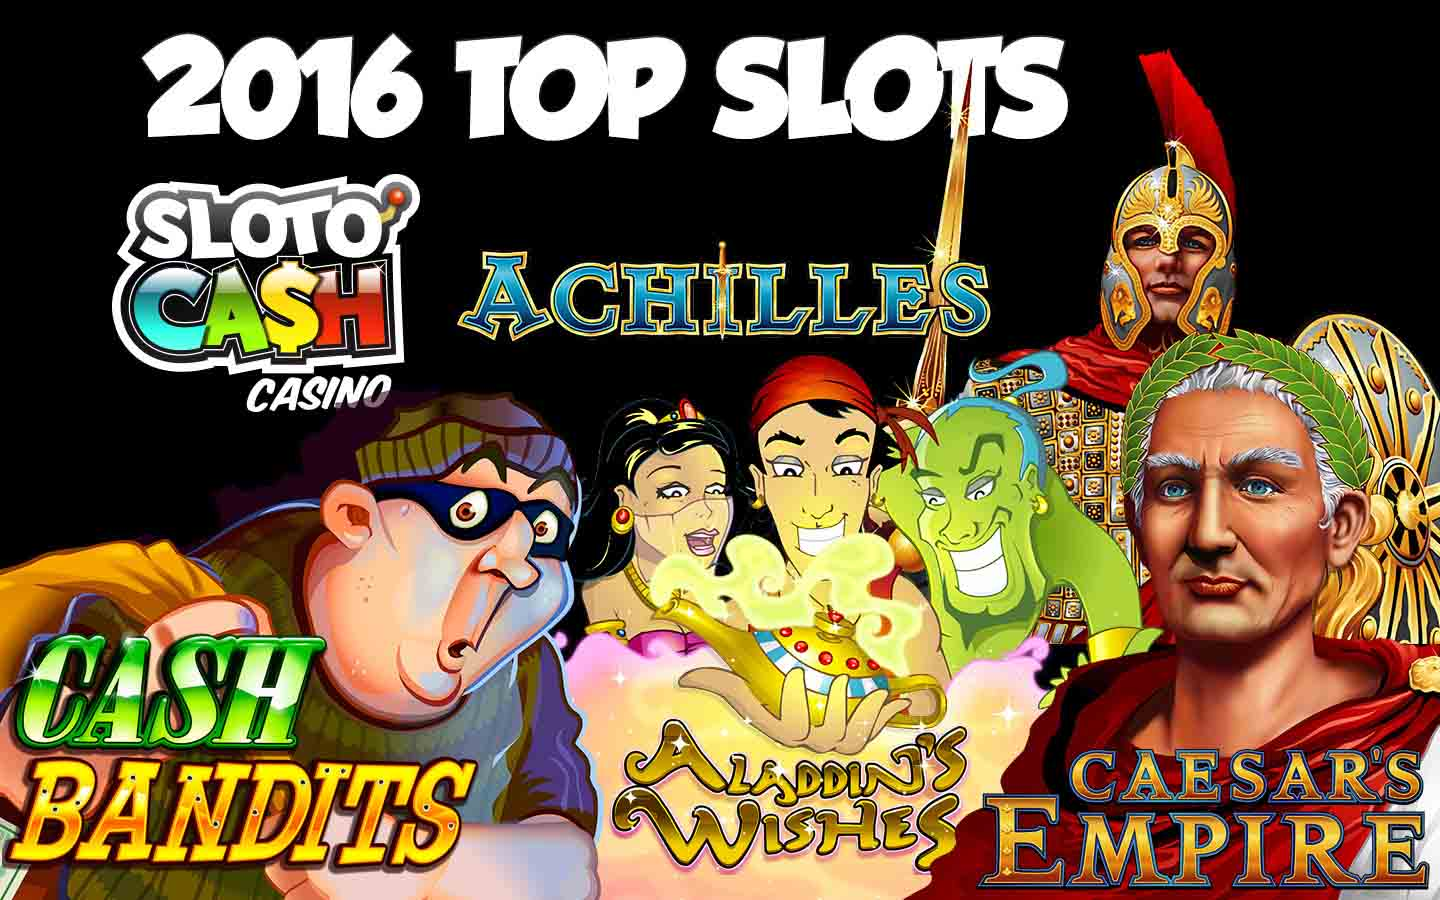 Top slots bonuses at SlotoCash casino